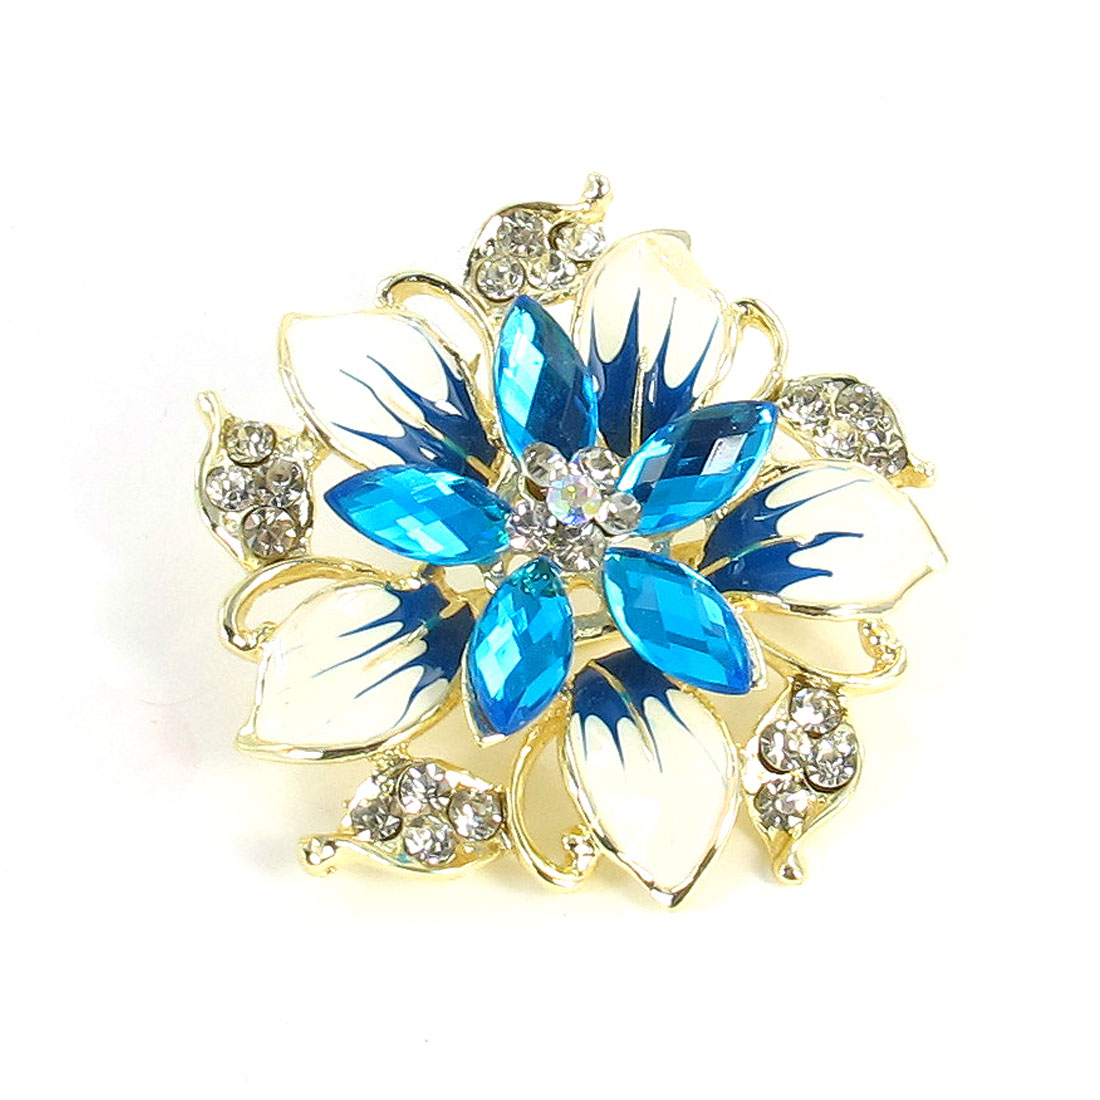 Lady Glitter Rhinestone Decor Blue Flower Design Safety Pin Brooch Broach